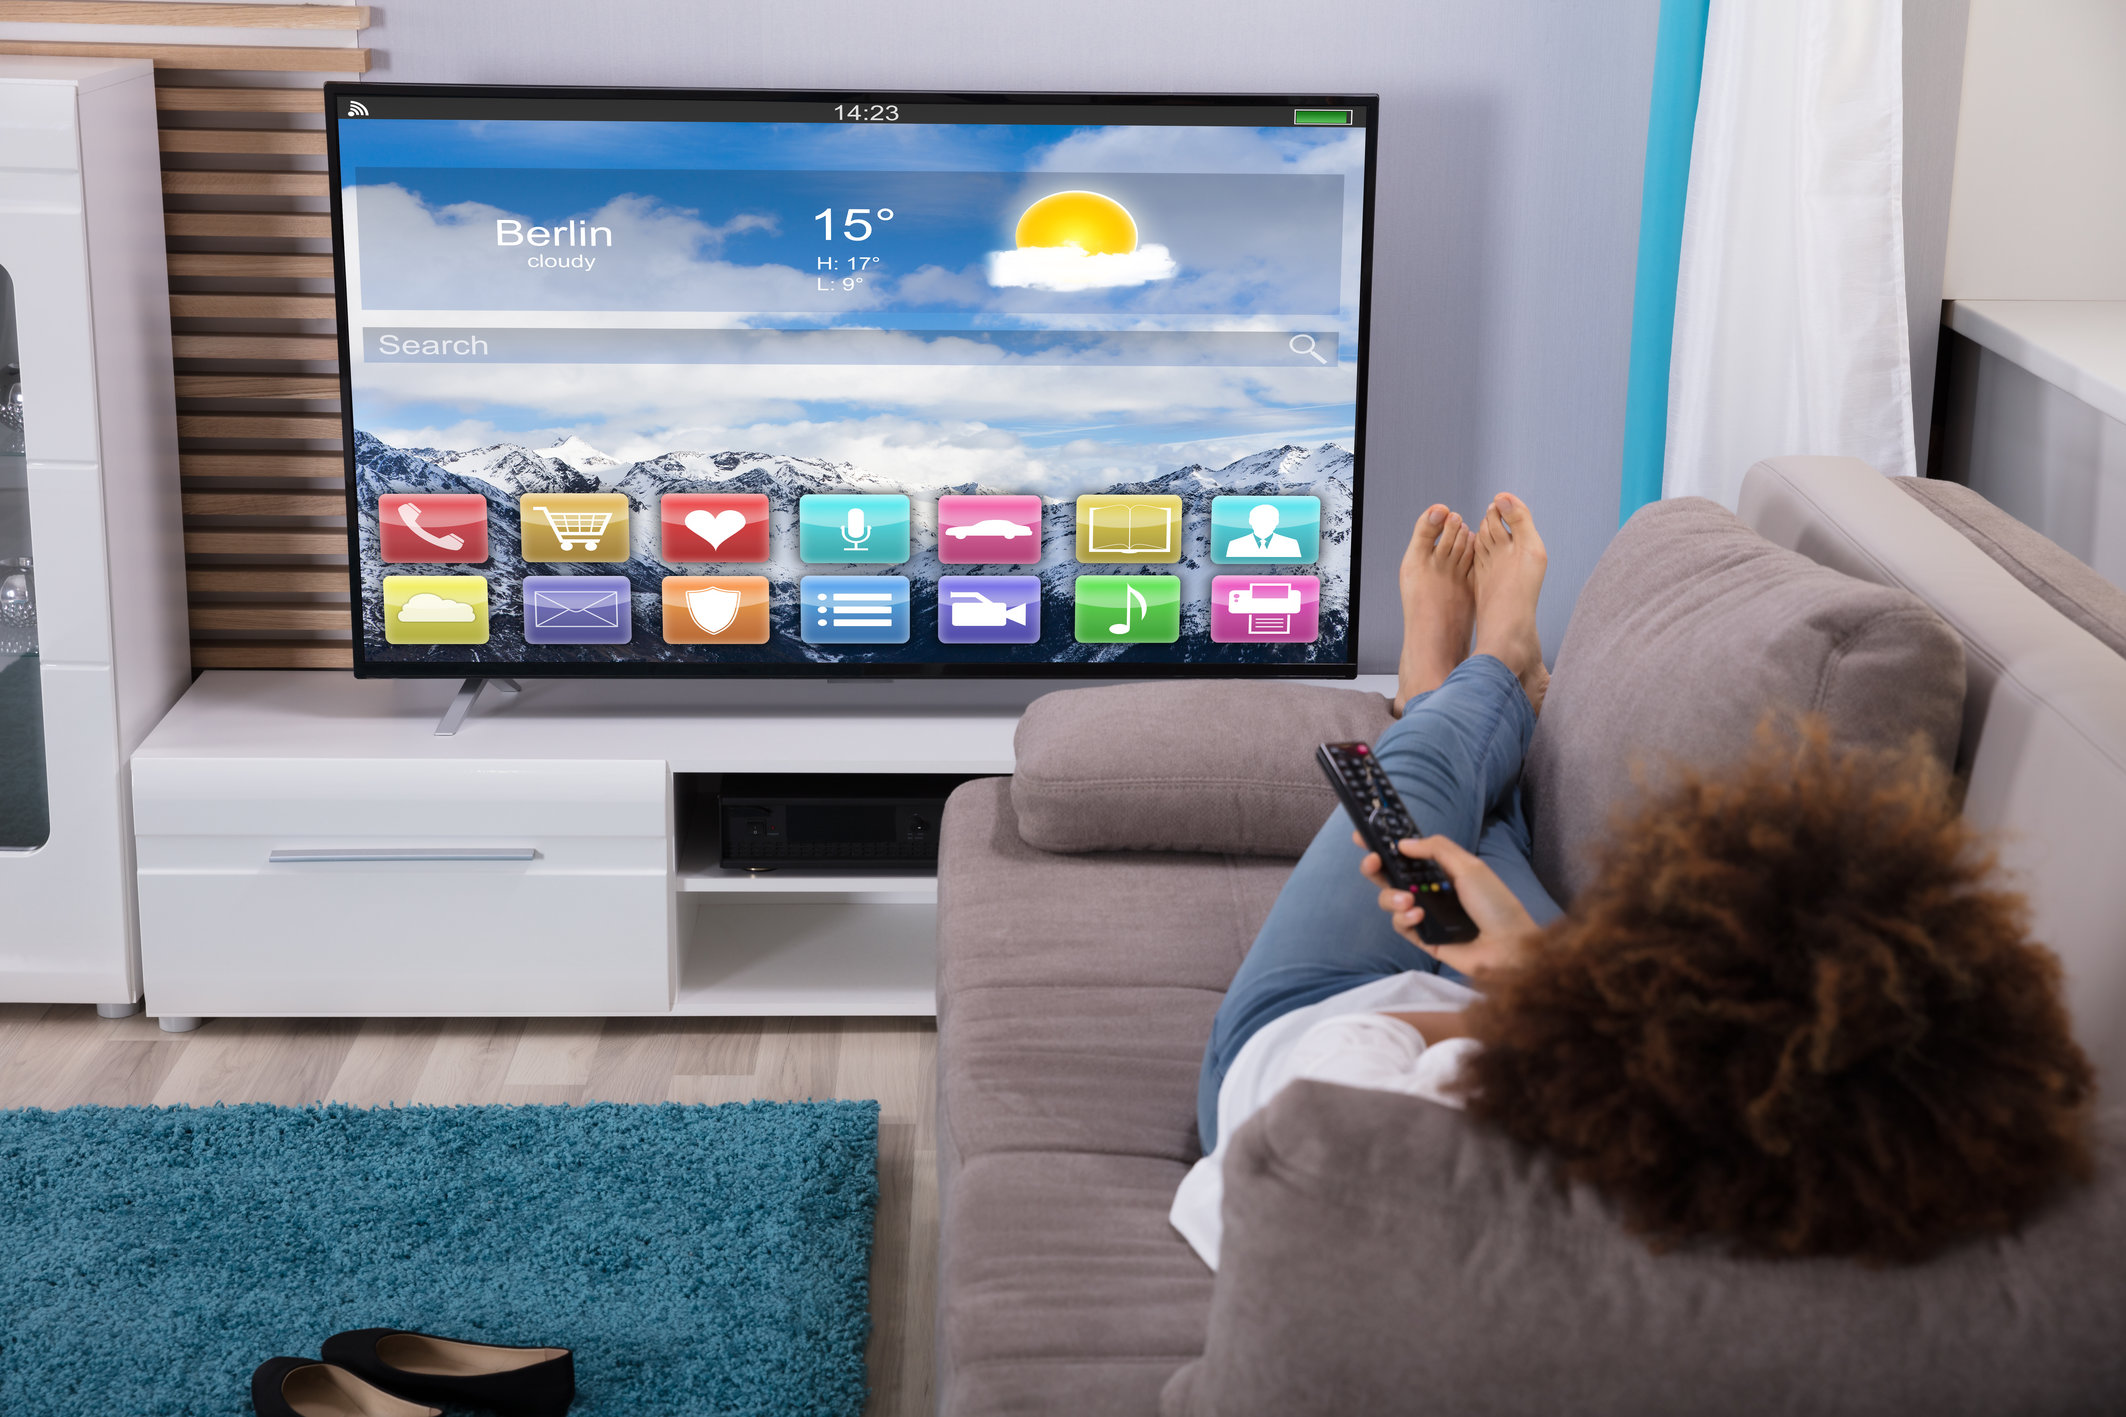 From Film Buff to Fluency: How to Learn a Language by Binge-Watching Movies and Shows